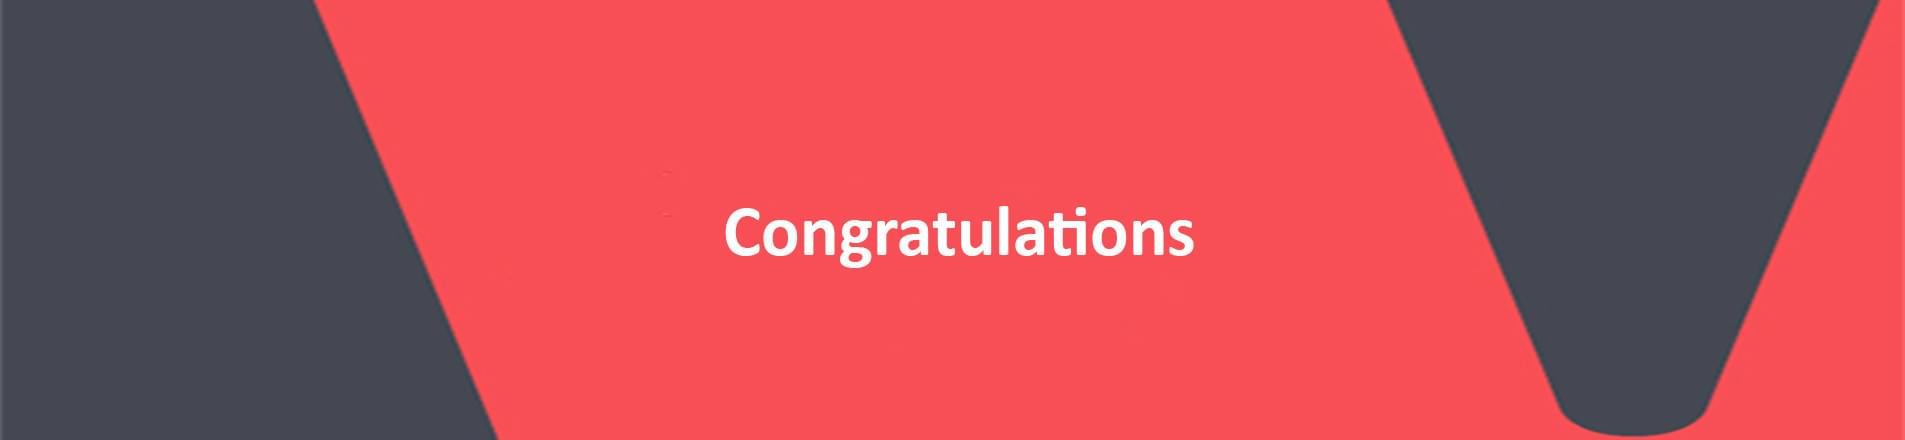 The word Congratulations in white on a red VERCIDA branded background